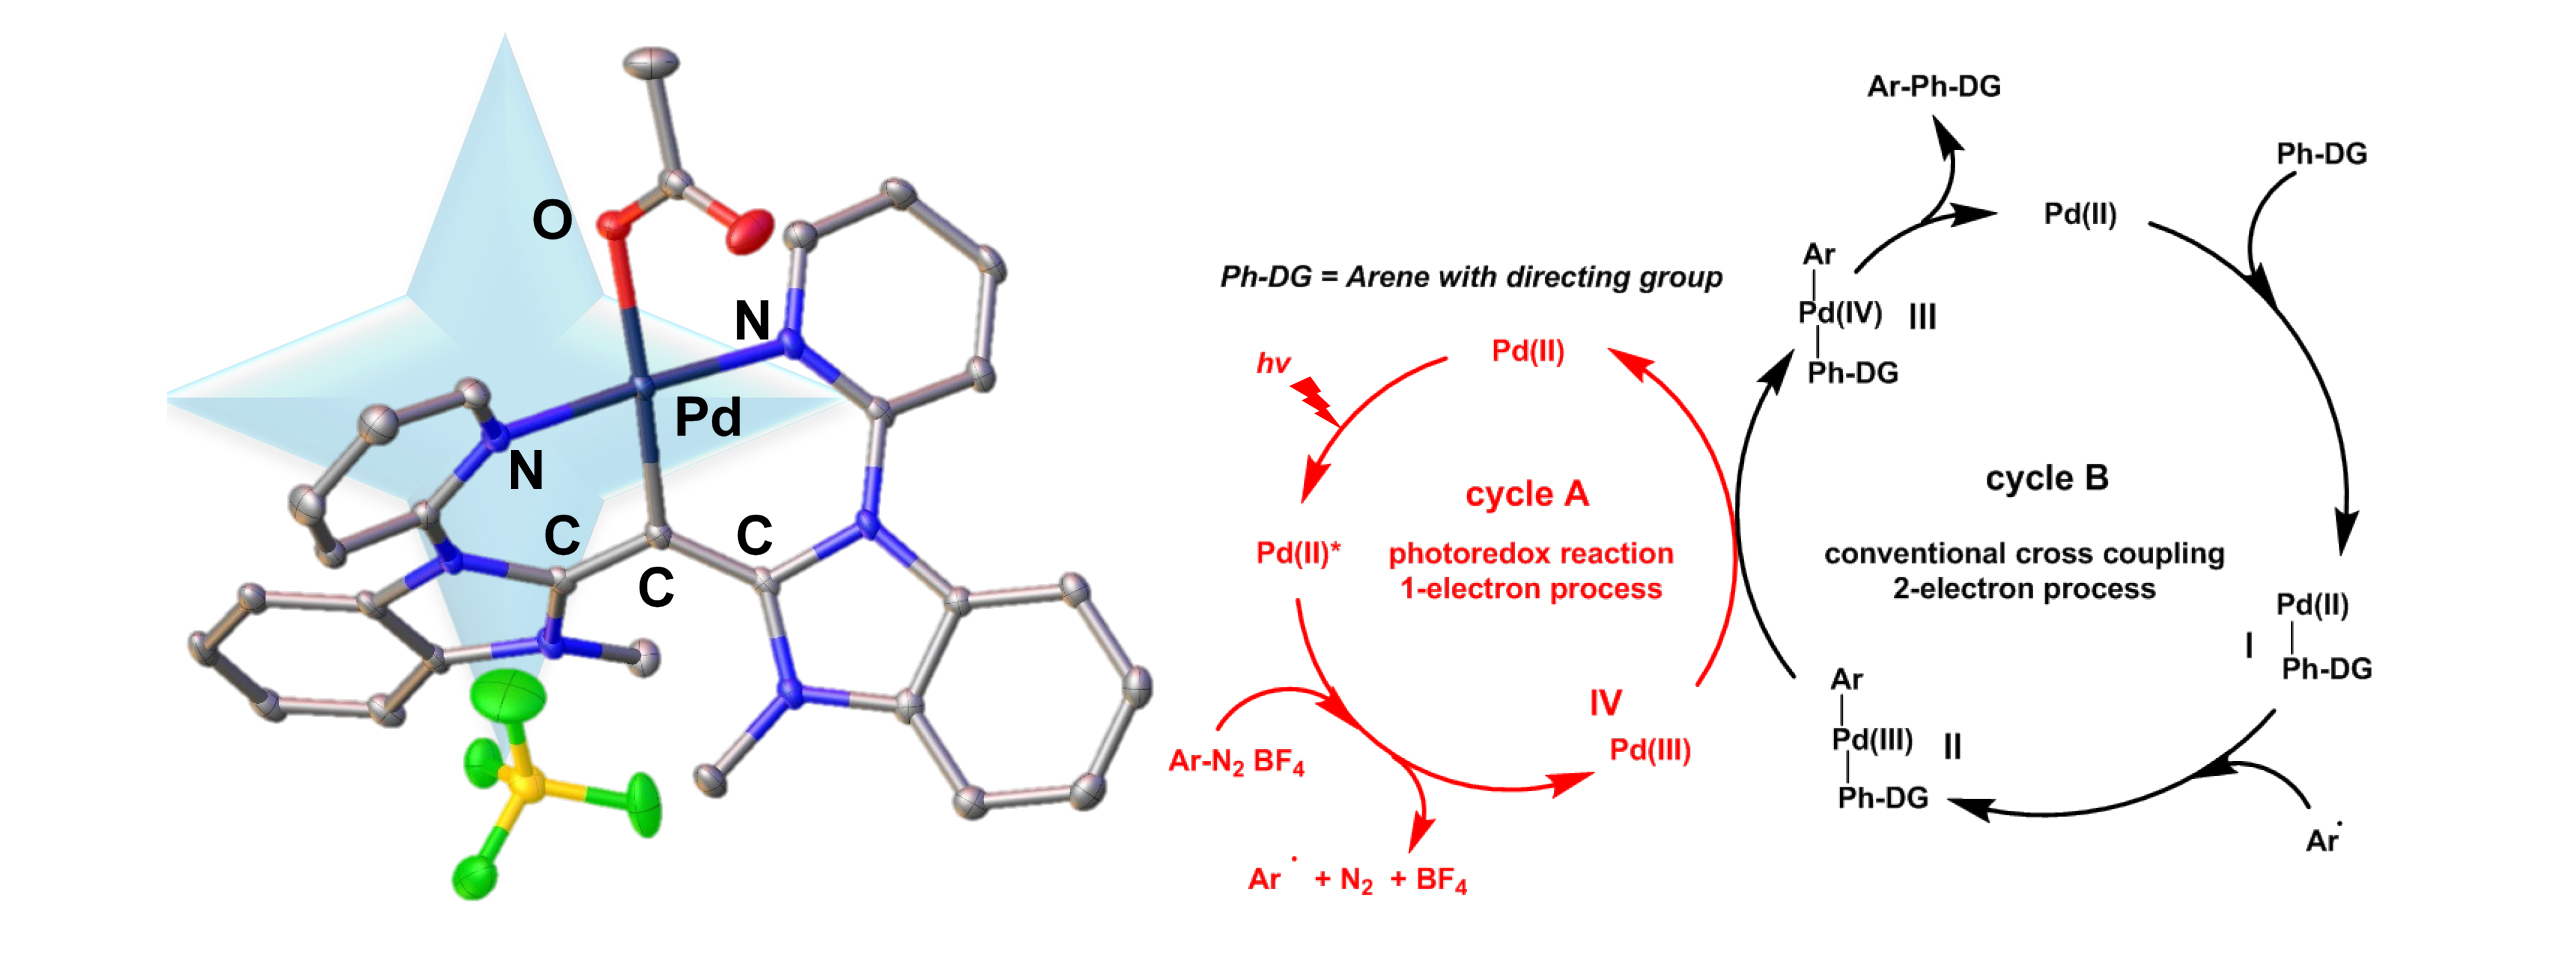 One-Pot Tandem Photoredox and Cross-Coupling Catalysis with a Single Palladium Carbodicarbene Complex